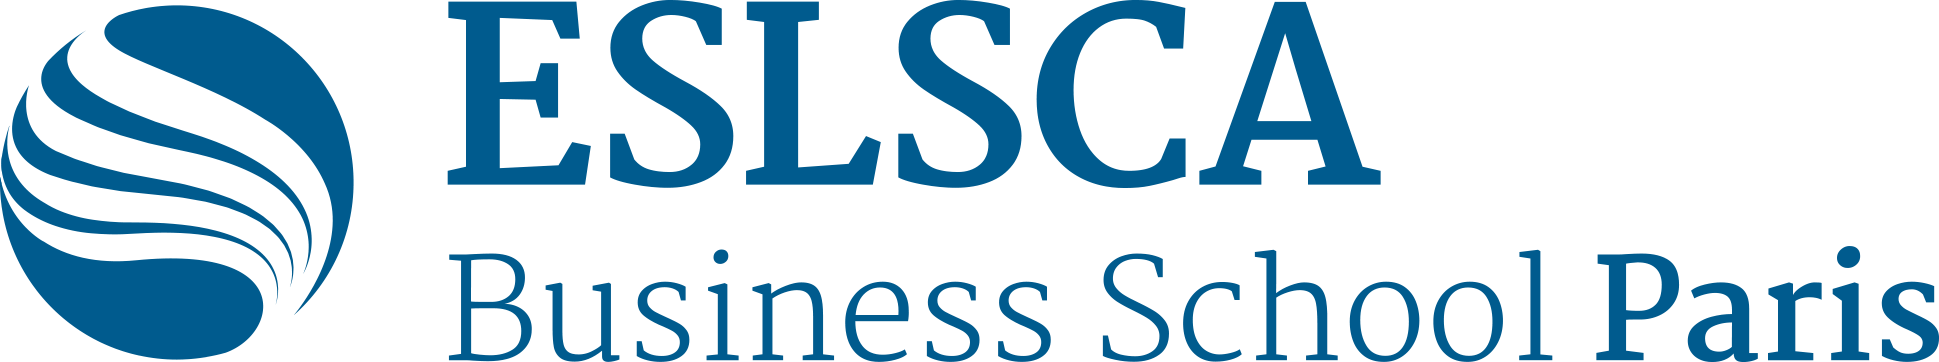 Logo de ESLSCA BUSINESS SCHOOL PARIS